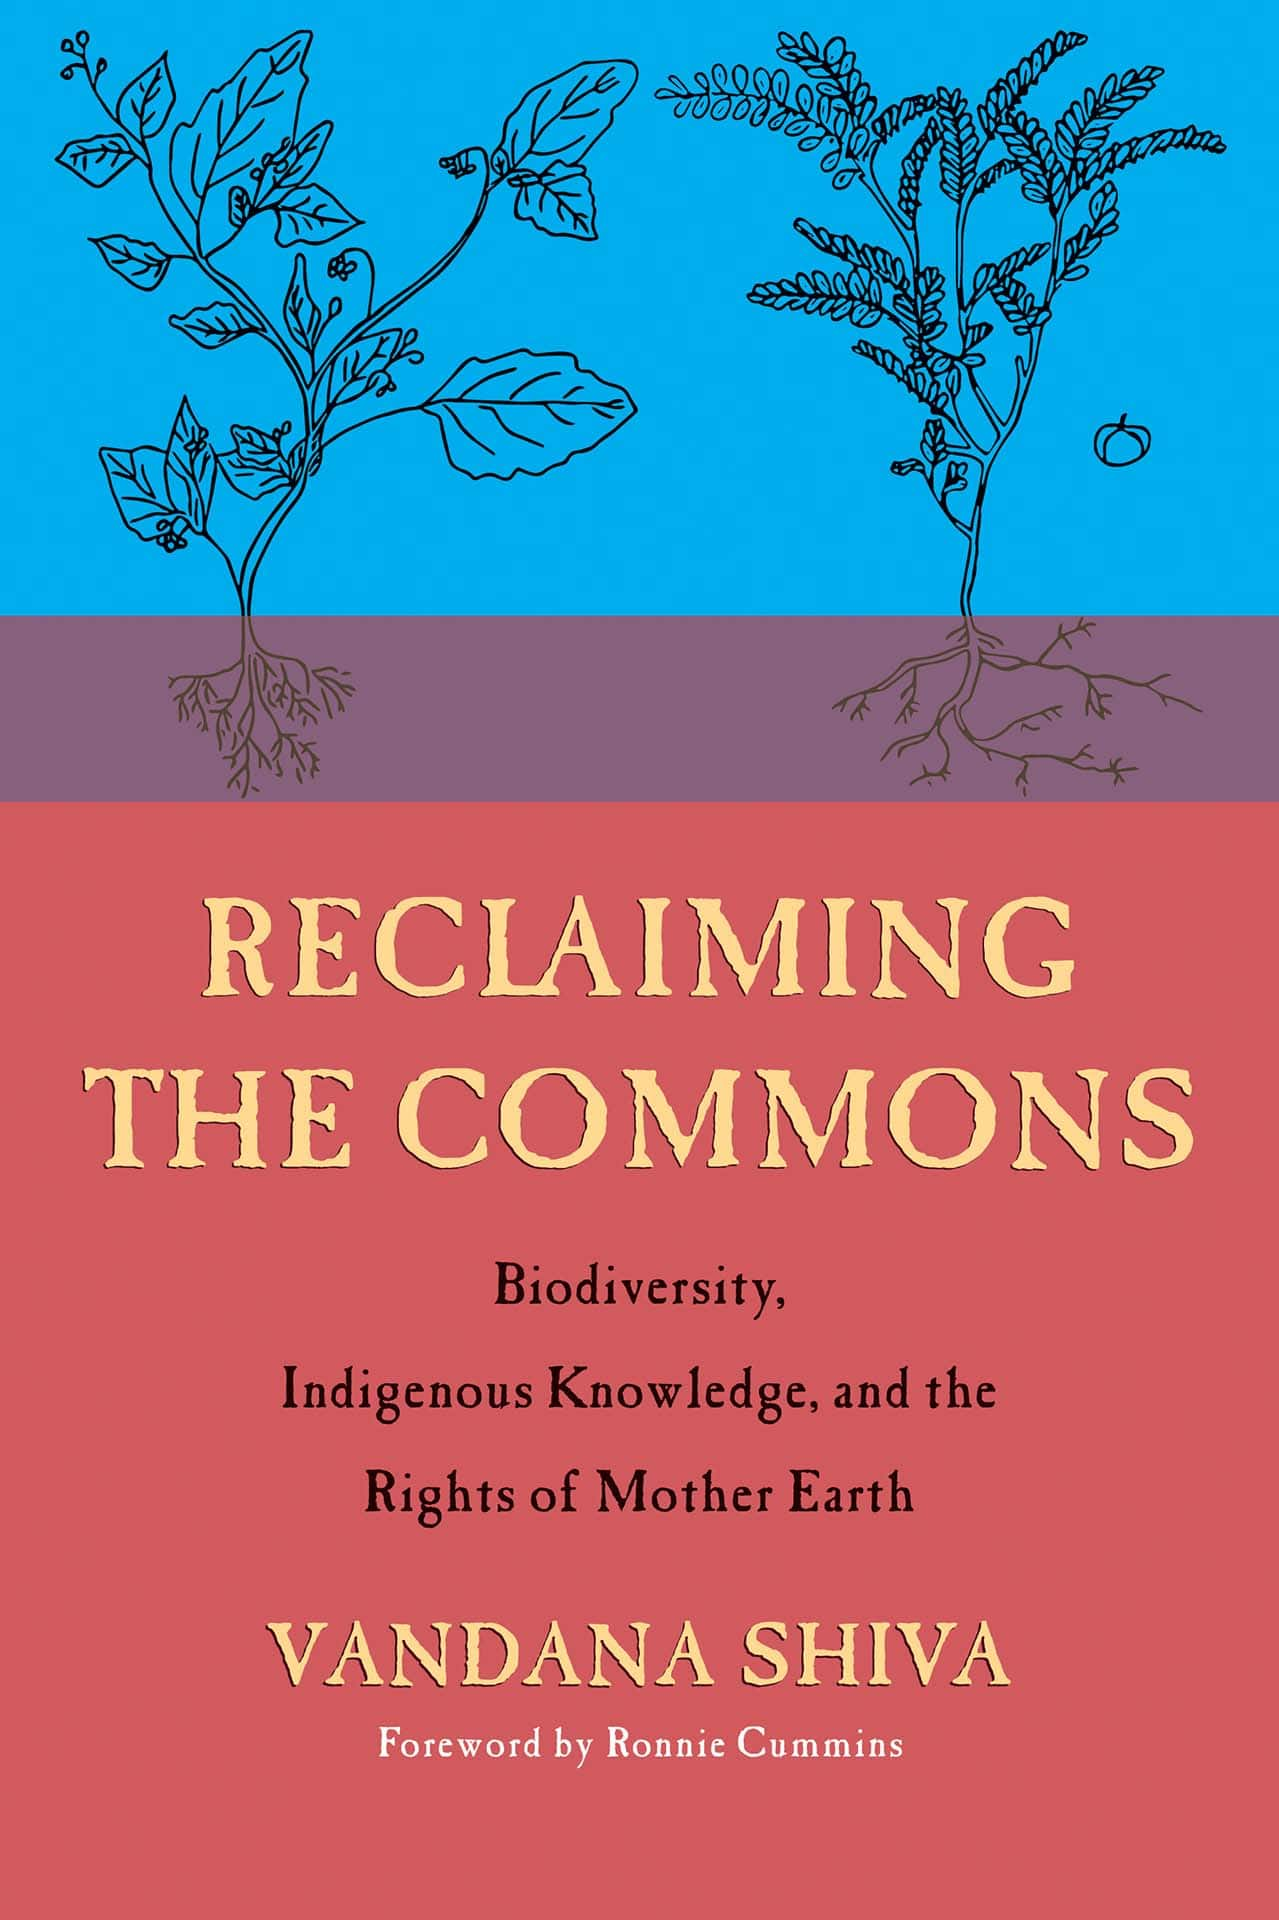 Reclaiming the Commons: Biodiversity, Indigenous Wisdom, and the Rights of Mother Earth